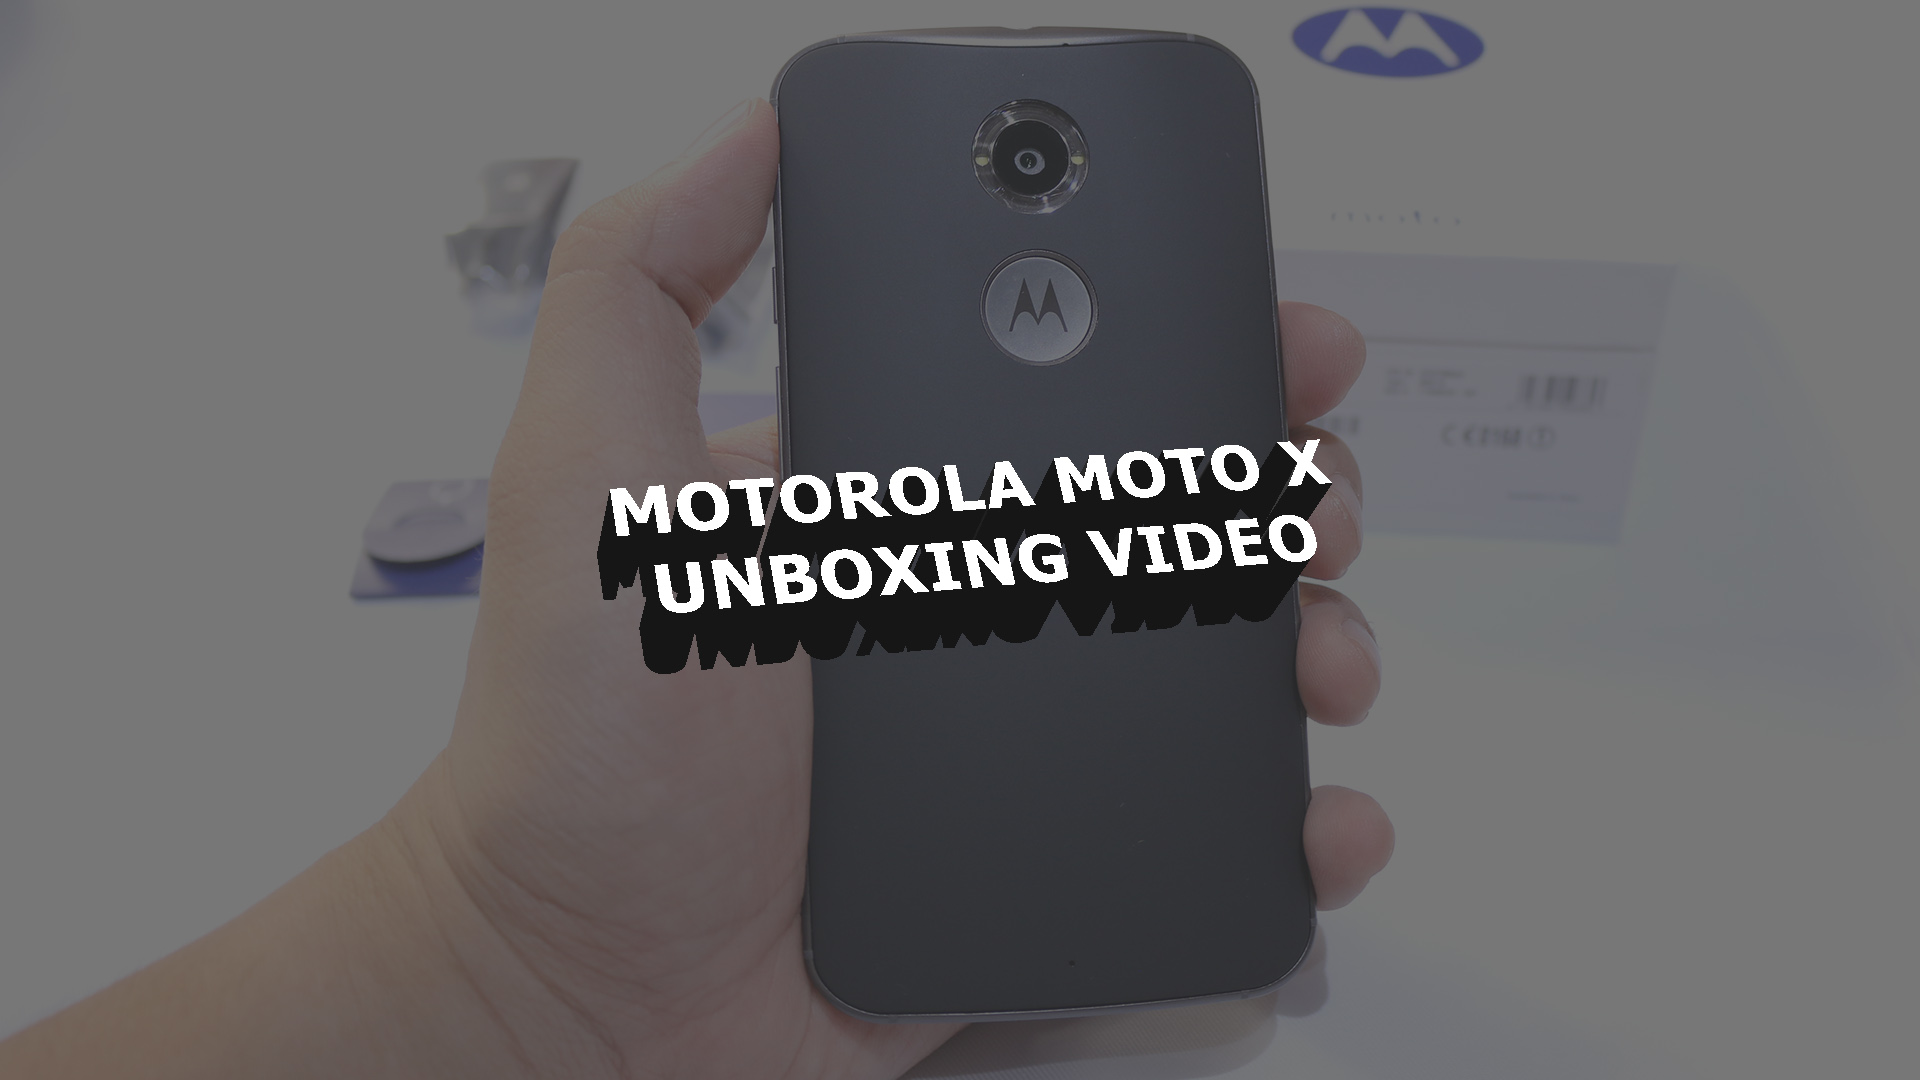 Unboxing - Motorola Moto X Unboxing Video